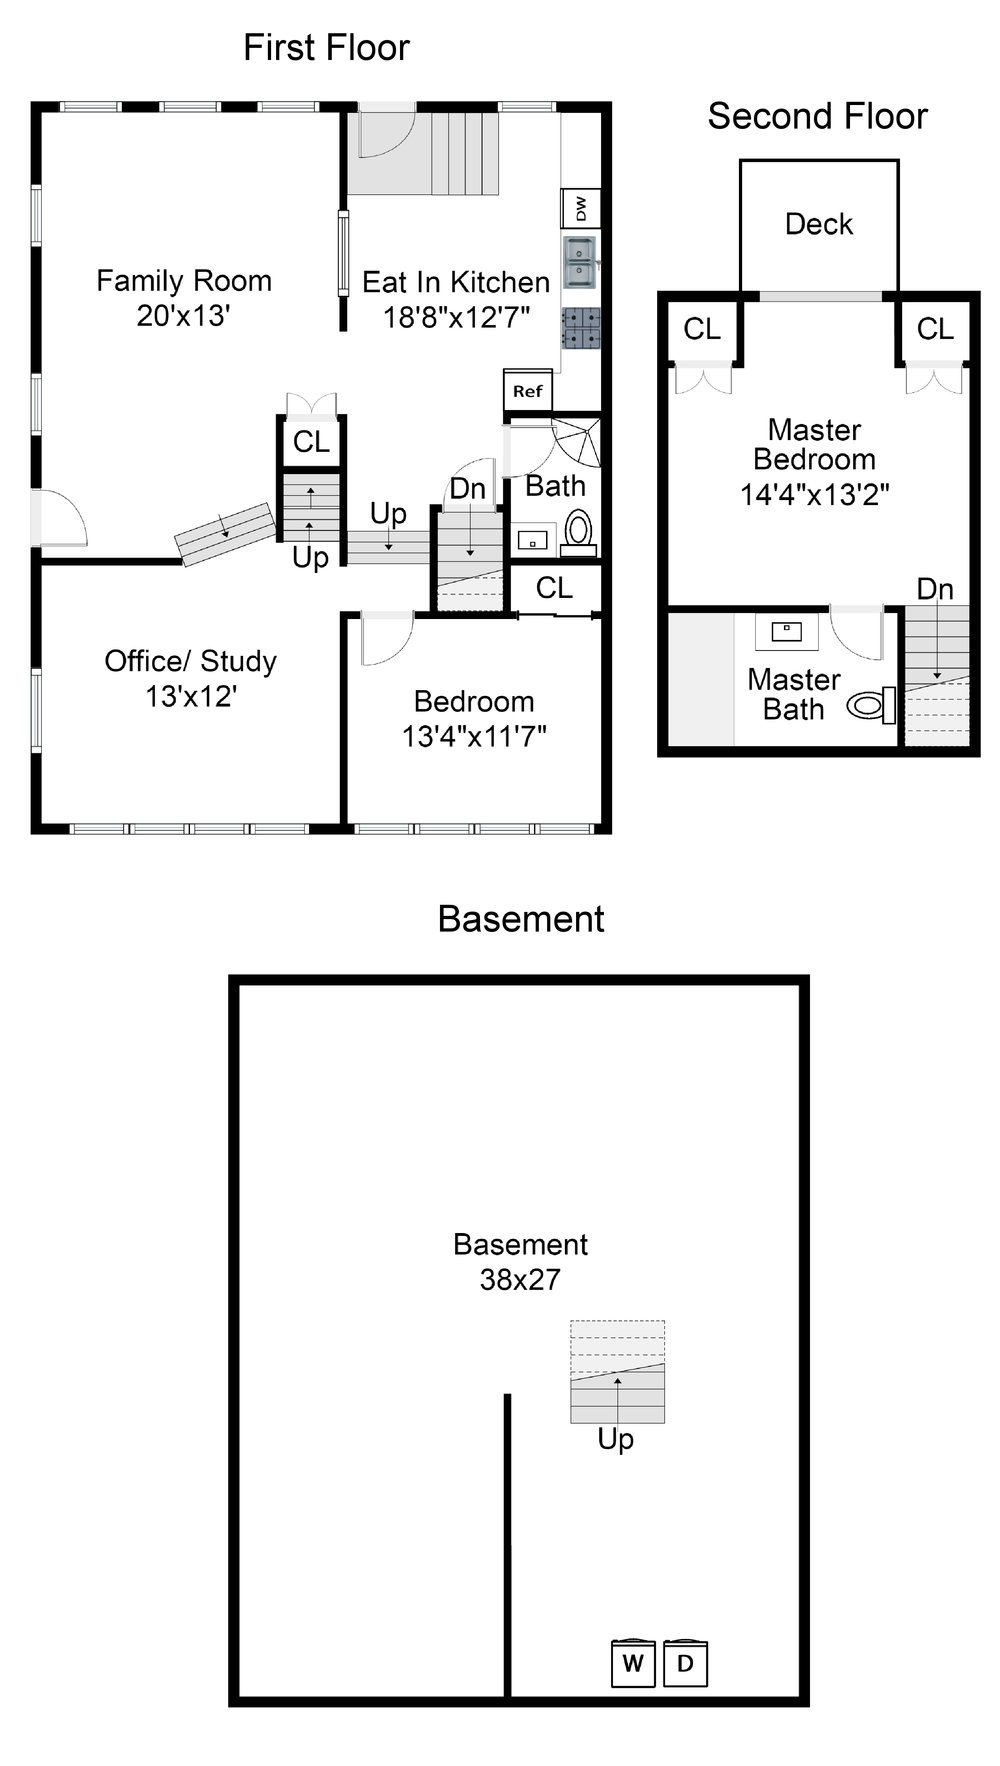 72 Morrison is a 3 level townhouse with an open floor plan and flexible living options.